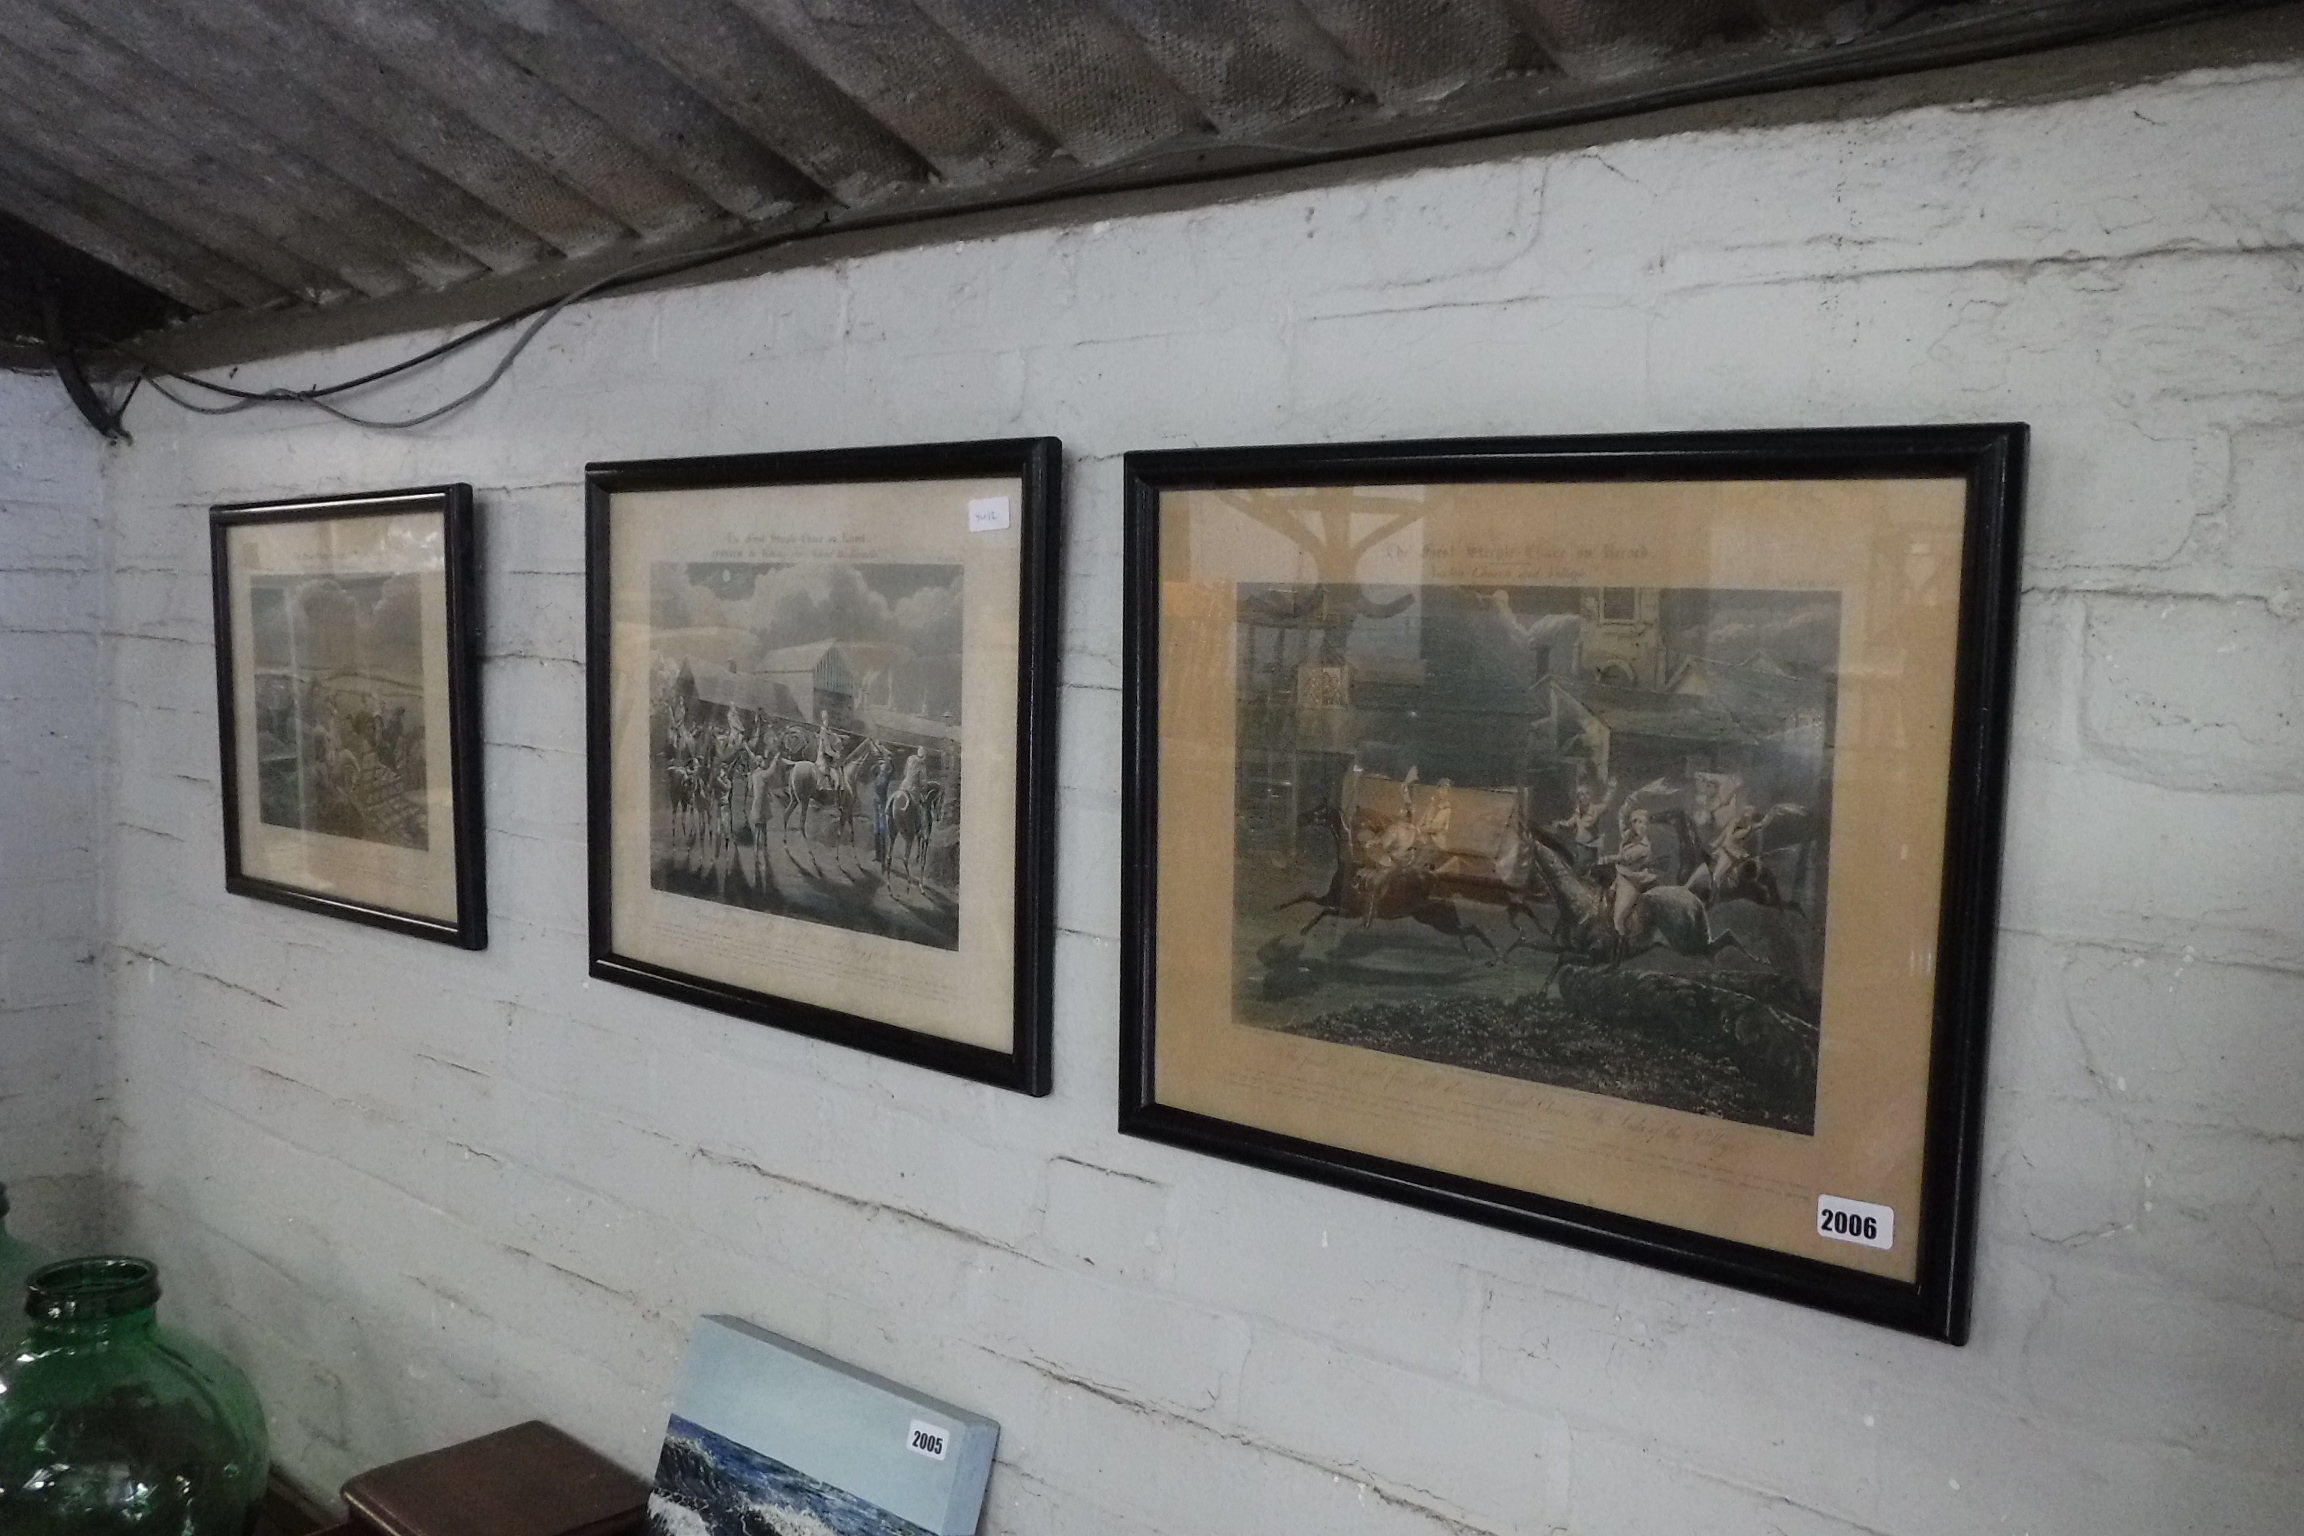 (2132) Set of 3 framed and glazed engravings of First Steeple Chase